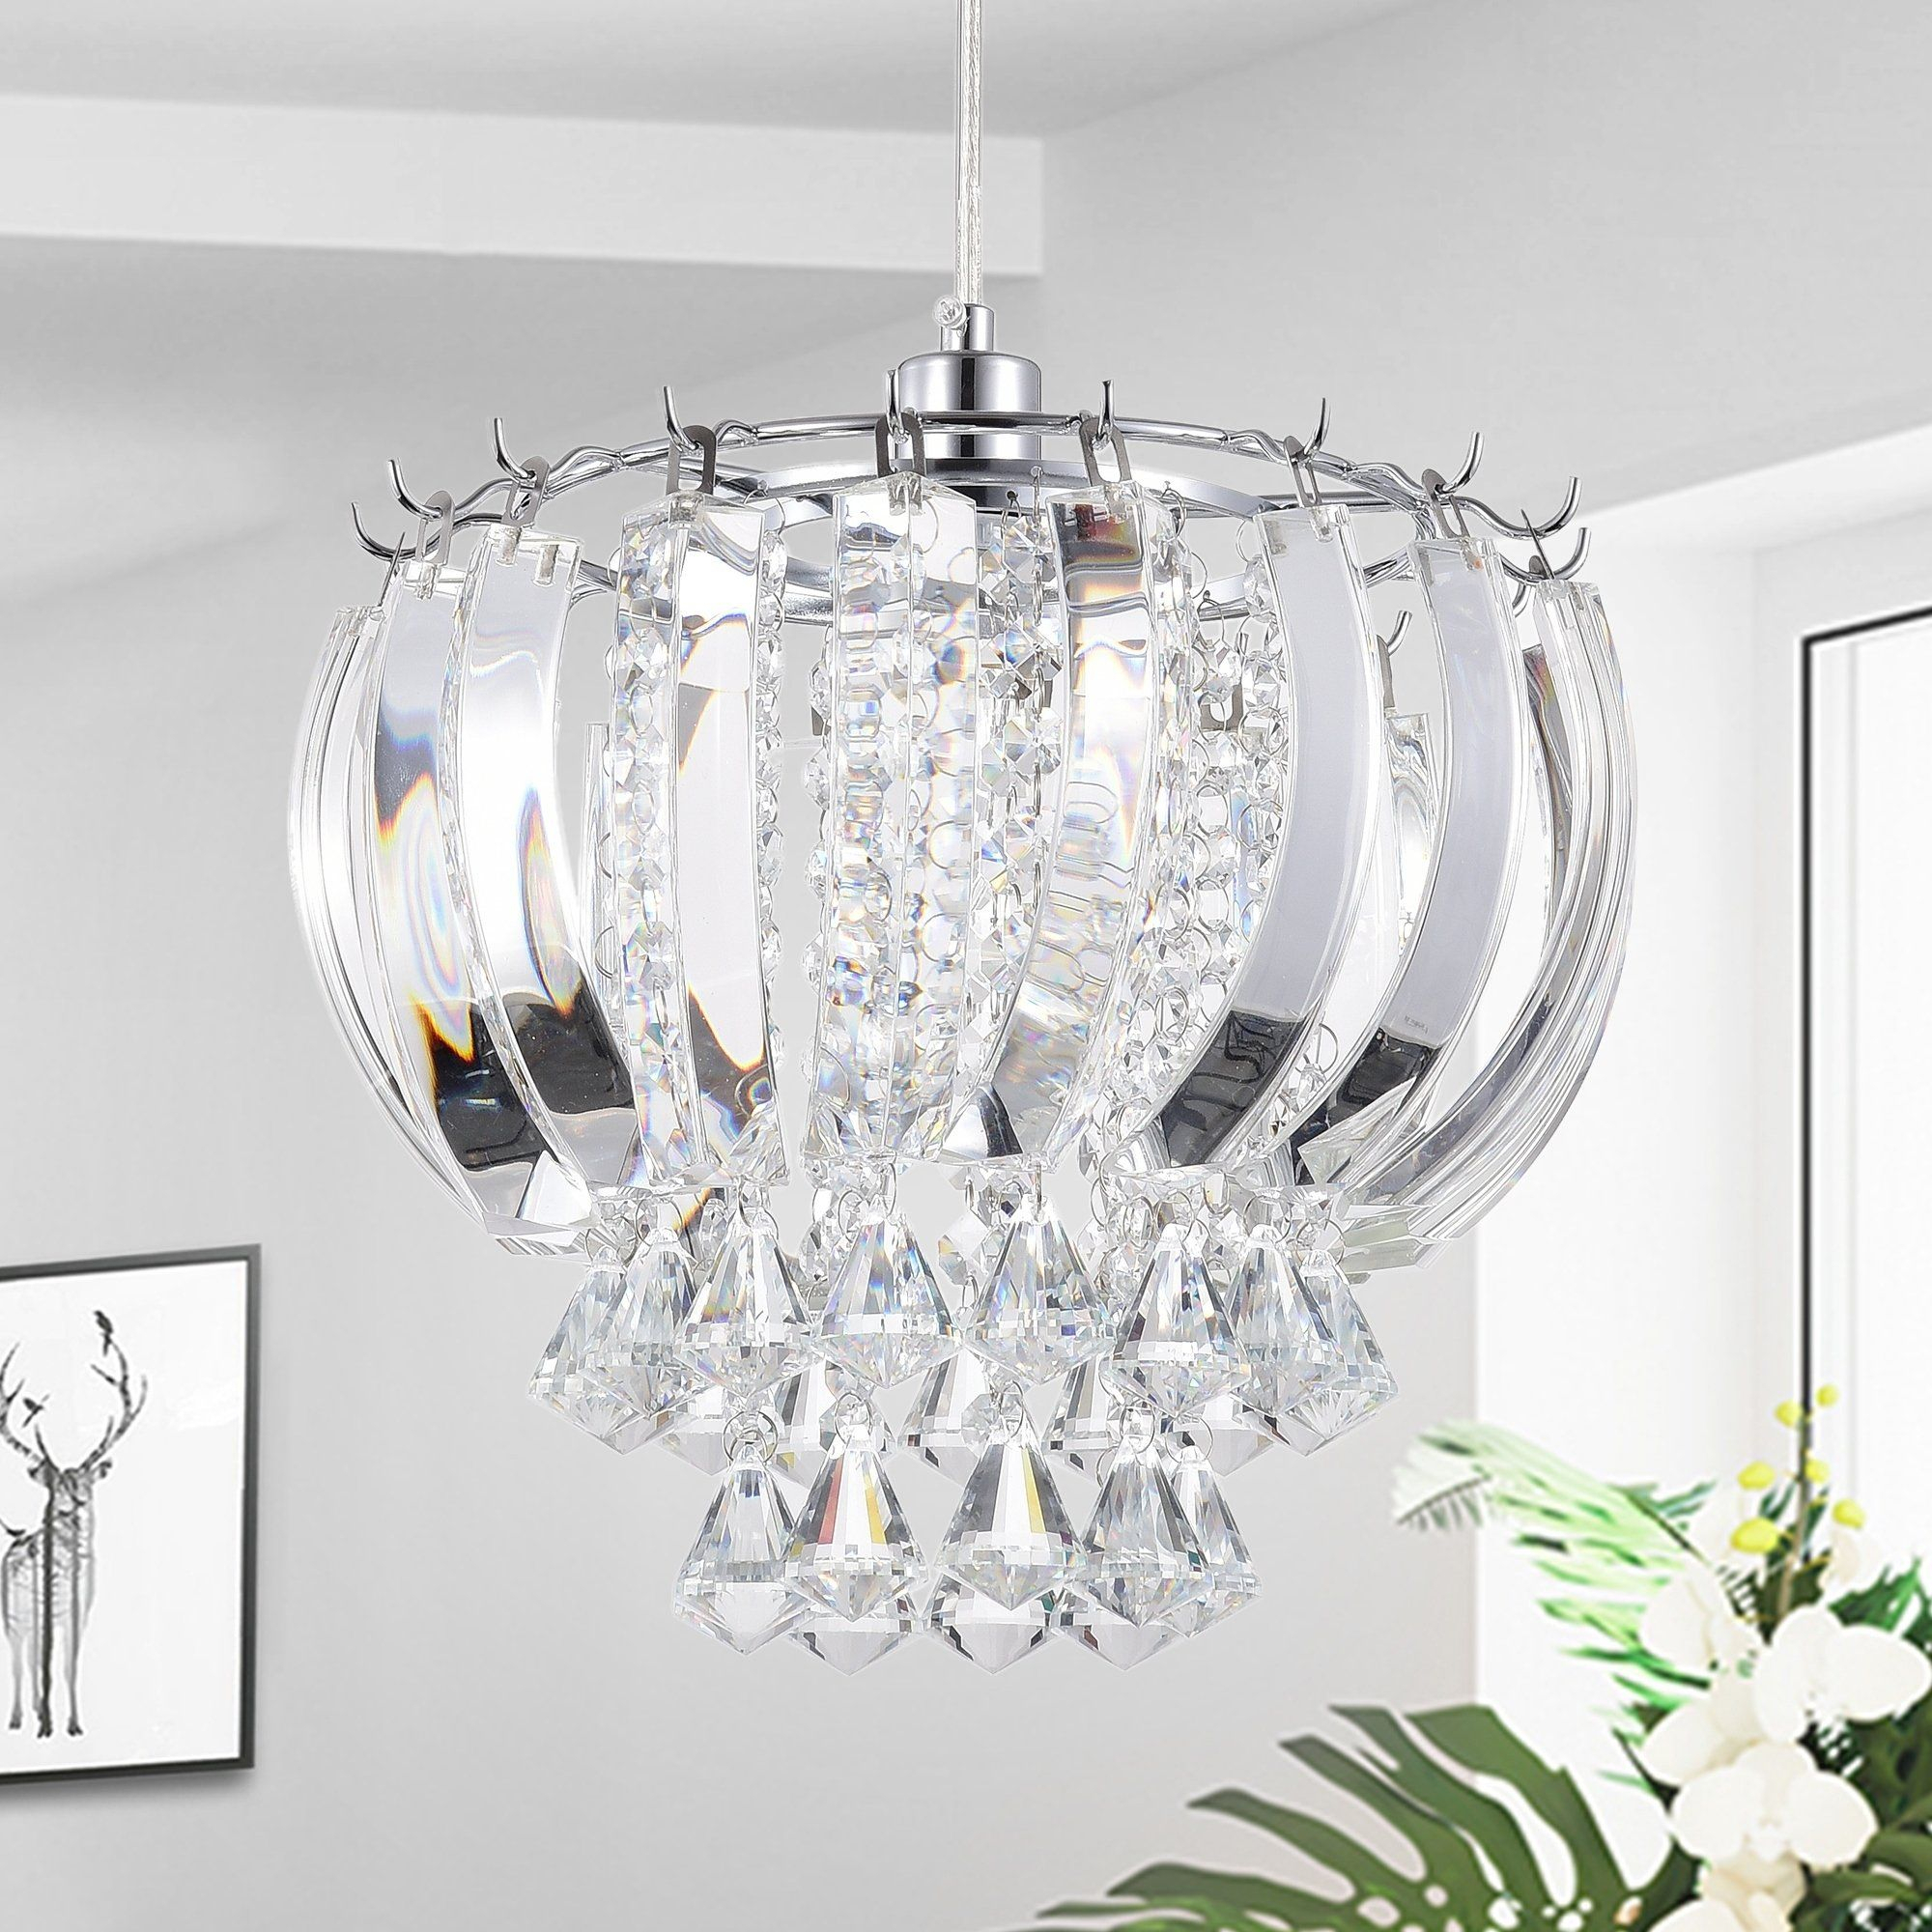 Elfman 1 Light Crystal Hanging Pendant | Products In 2019 With Regard To Edmundo 1 Light Unique / Statement Geometric Pendants (Gallery 5 of 30)